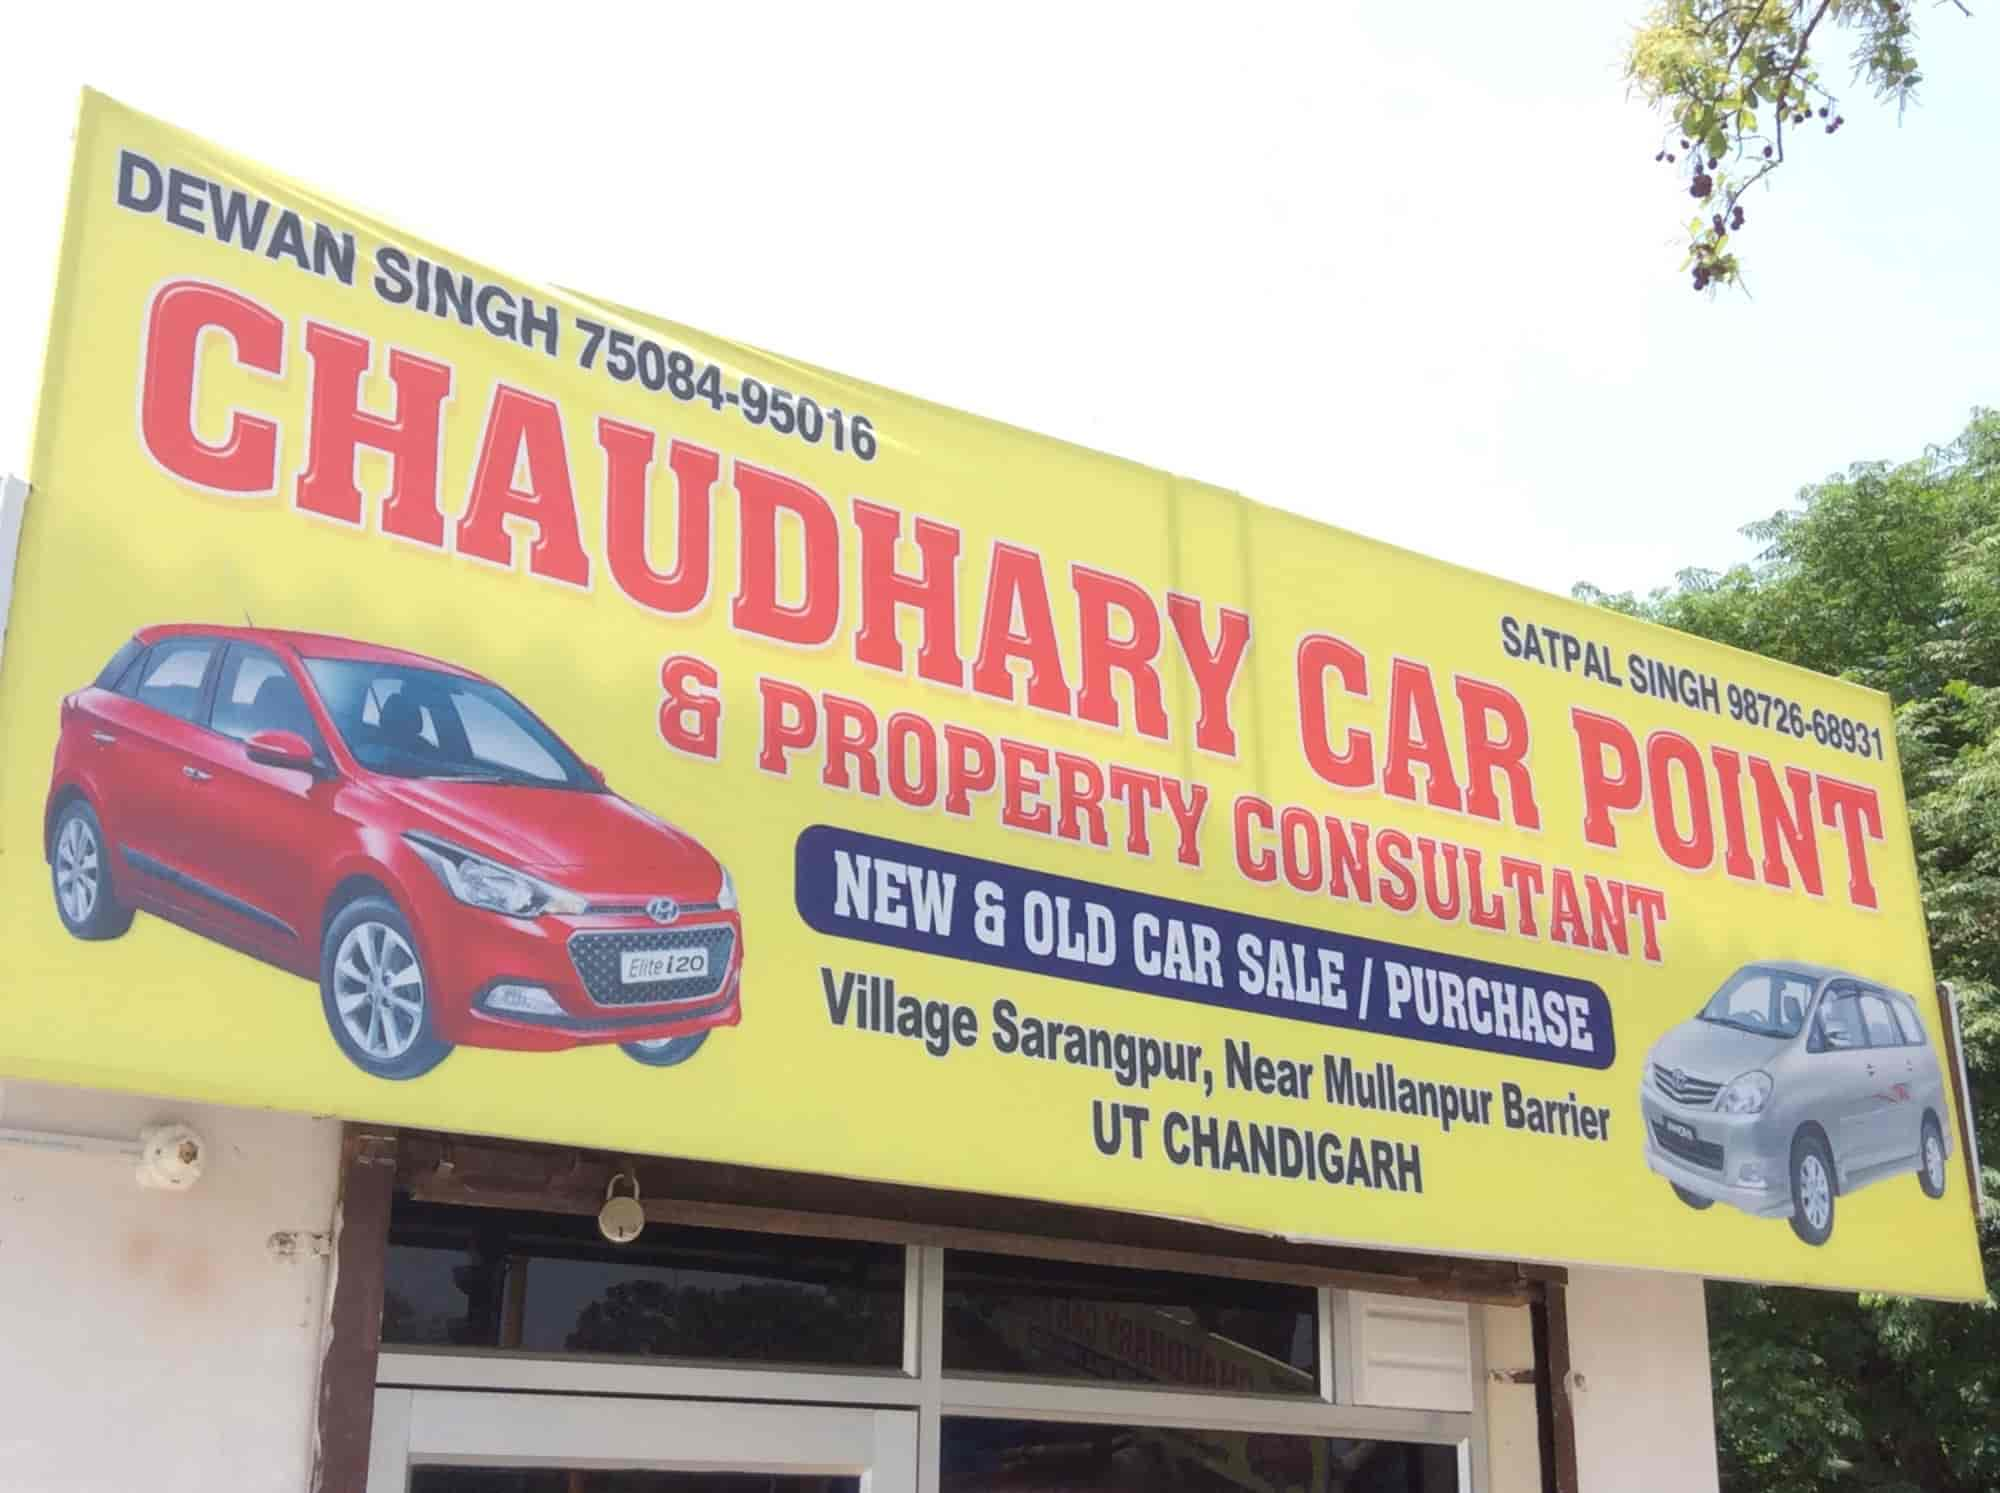 Chaudhary Car Point (Closed Down), Sarangpur - Choudhary Car Point ...